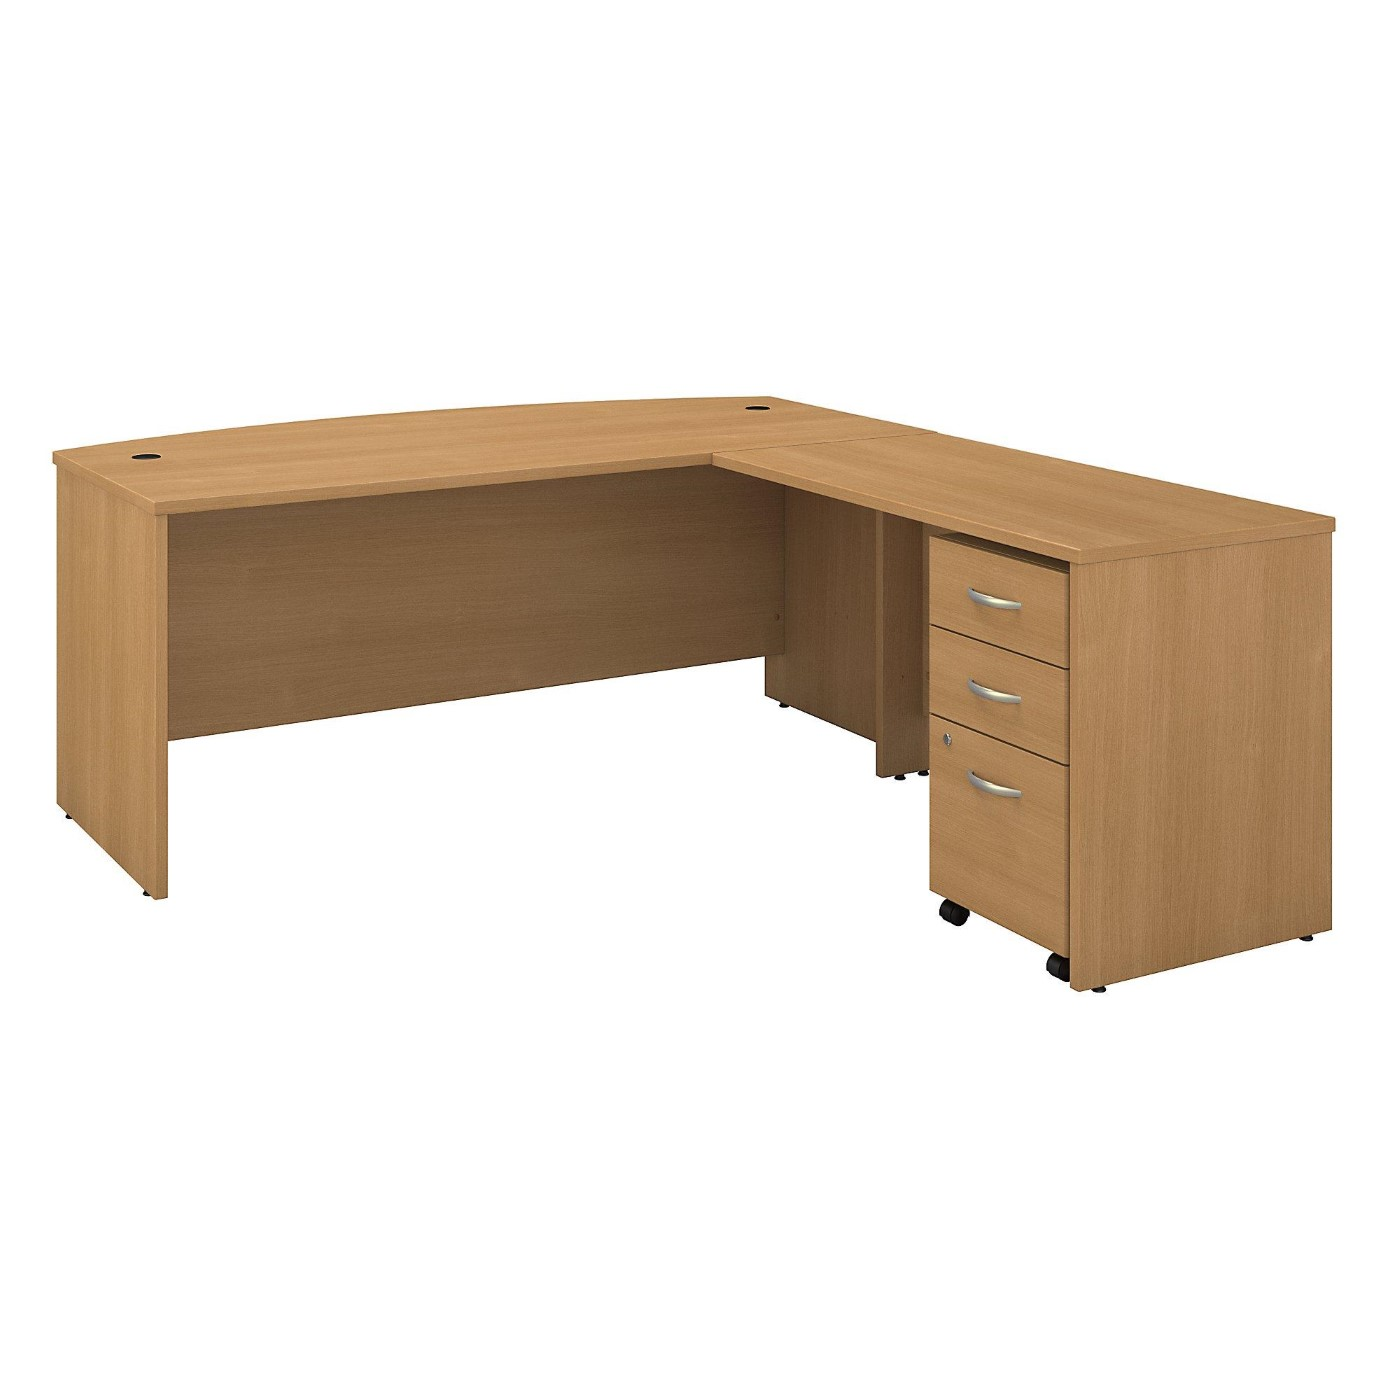 BUSH BUSINESS FURNITURE SERIES C 72W BOW FRONT L SHAPED DESK WITH 48W RETURN AND MOBILE FILE CABINET. FREE SHIPPING</font></b></font>&#x1F384<font color=red><b>ERGONOMICHOME HOLIDAY SALE - ENDS DEC. 17, 2019</b></font>&#x1F384